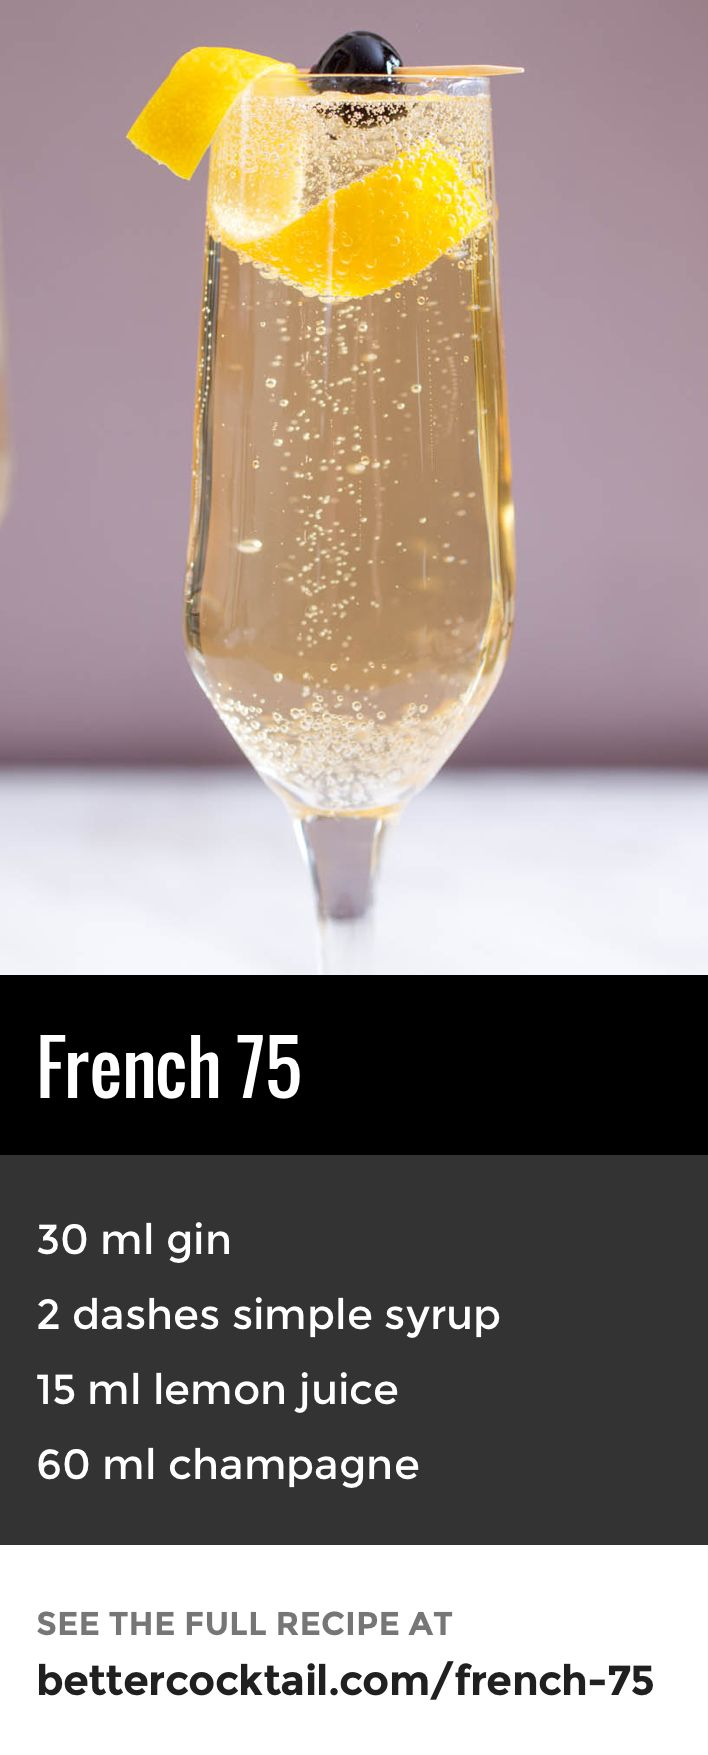 The French 75 cocktail, also known as the 75 cocktail, is a drink that dates back to the first World War. I was originally created at the New York Bar in Paris by Harry MacElhone. The drink gets its name from the kick given by the blend of gin and champagne, which is said to feel like being shelled with a French 75mm field gun. The drink is served in a champagne flute.